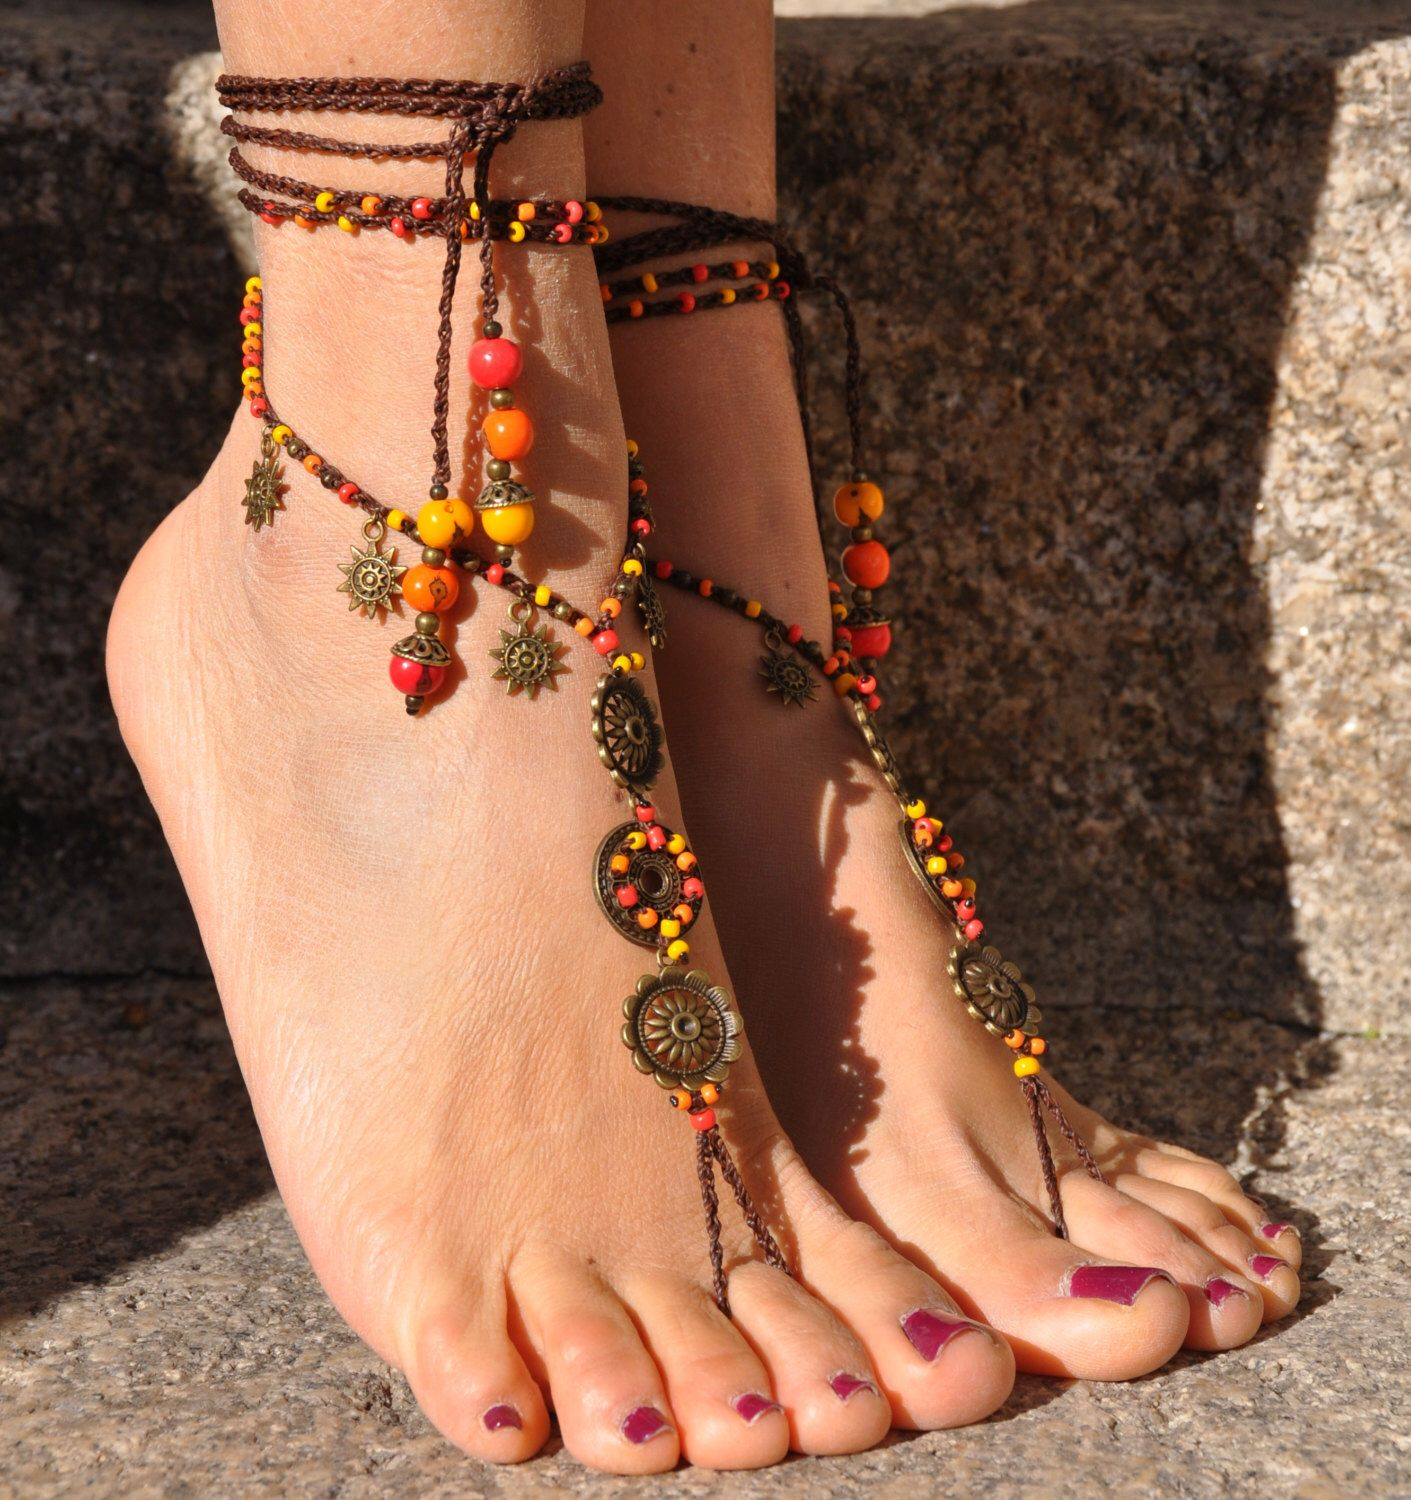 sandal brown thong wedding bridal sexy store shoes hippie jewelry anklet feet barefoot bare foot decoration accessories toe